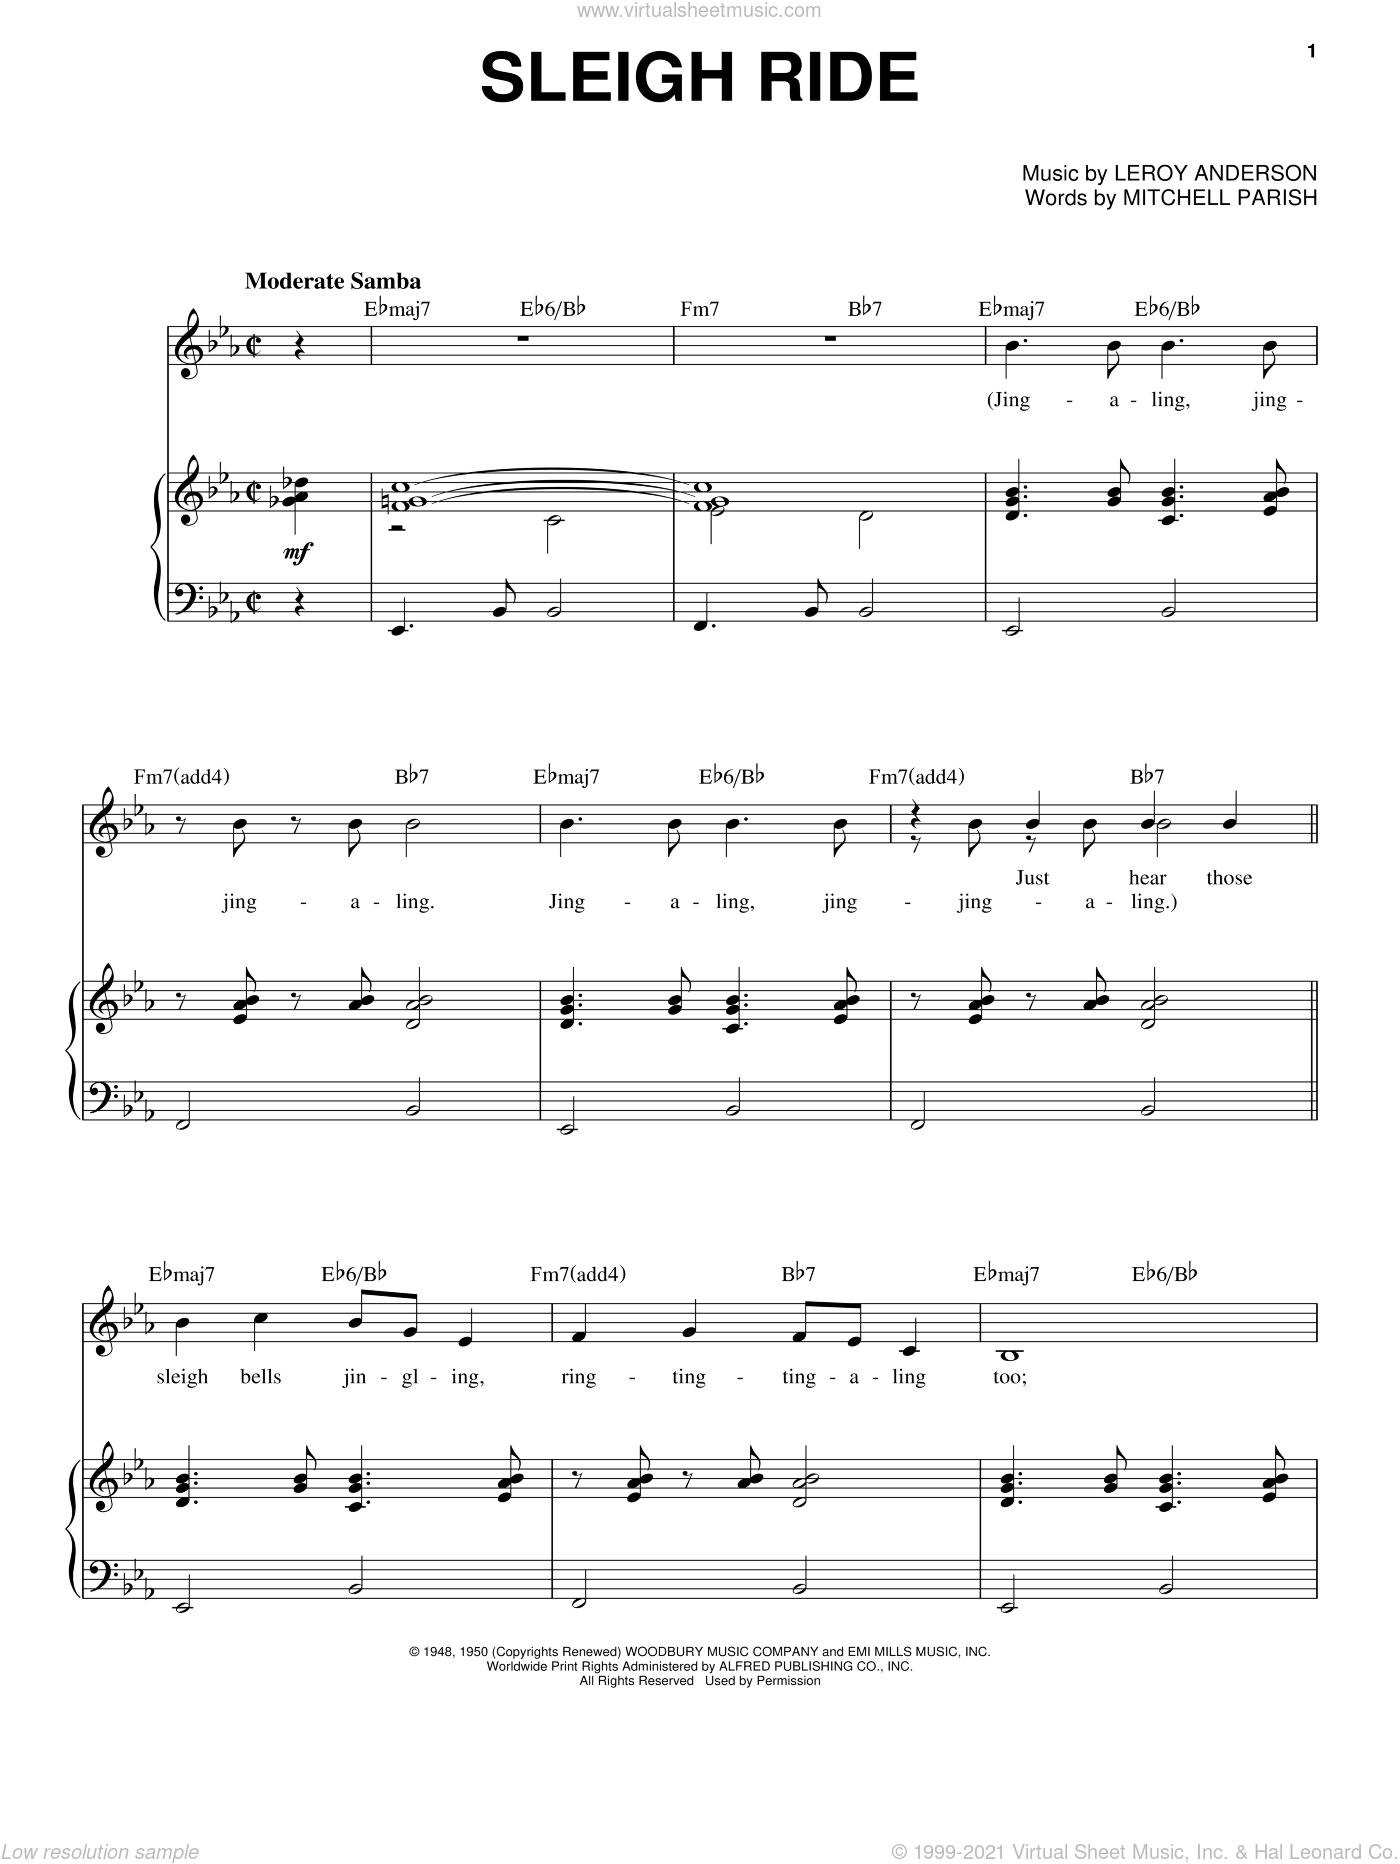 Sleigh Ride sheet music for voice and piano by Leroy Anderson, Andy Williams and Mitchell Parish, intermediate skill level